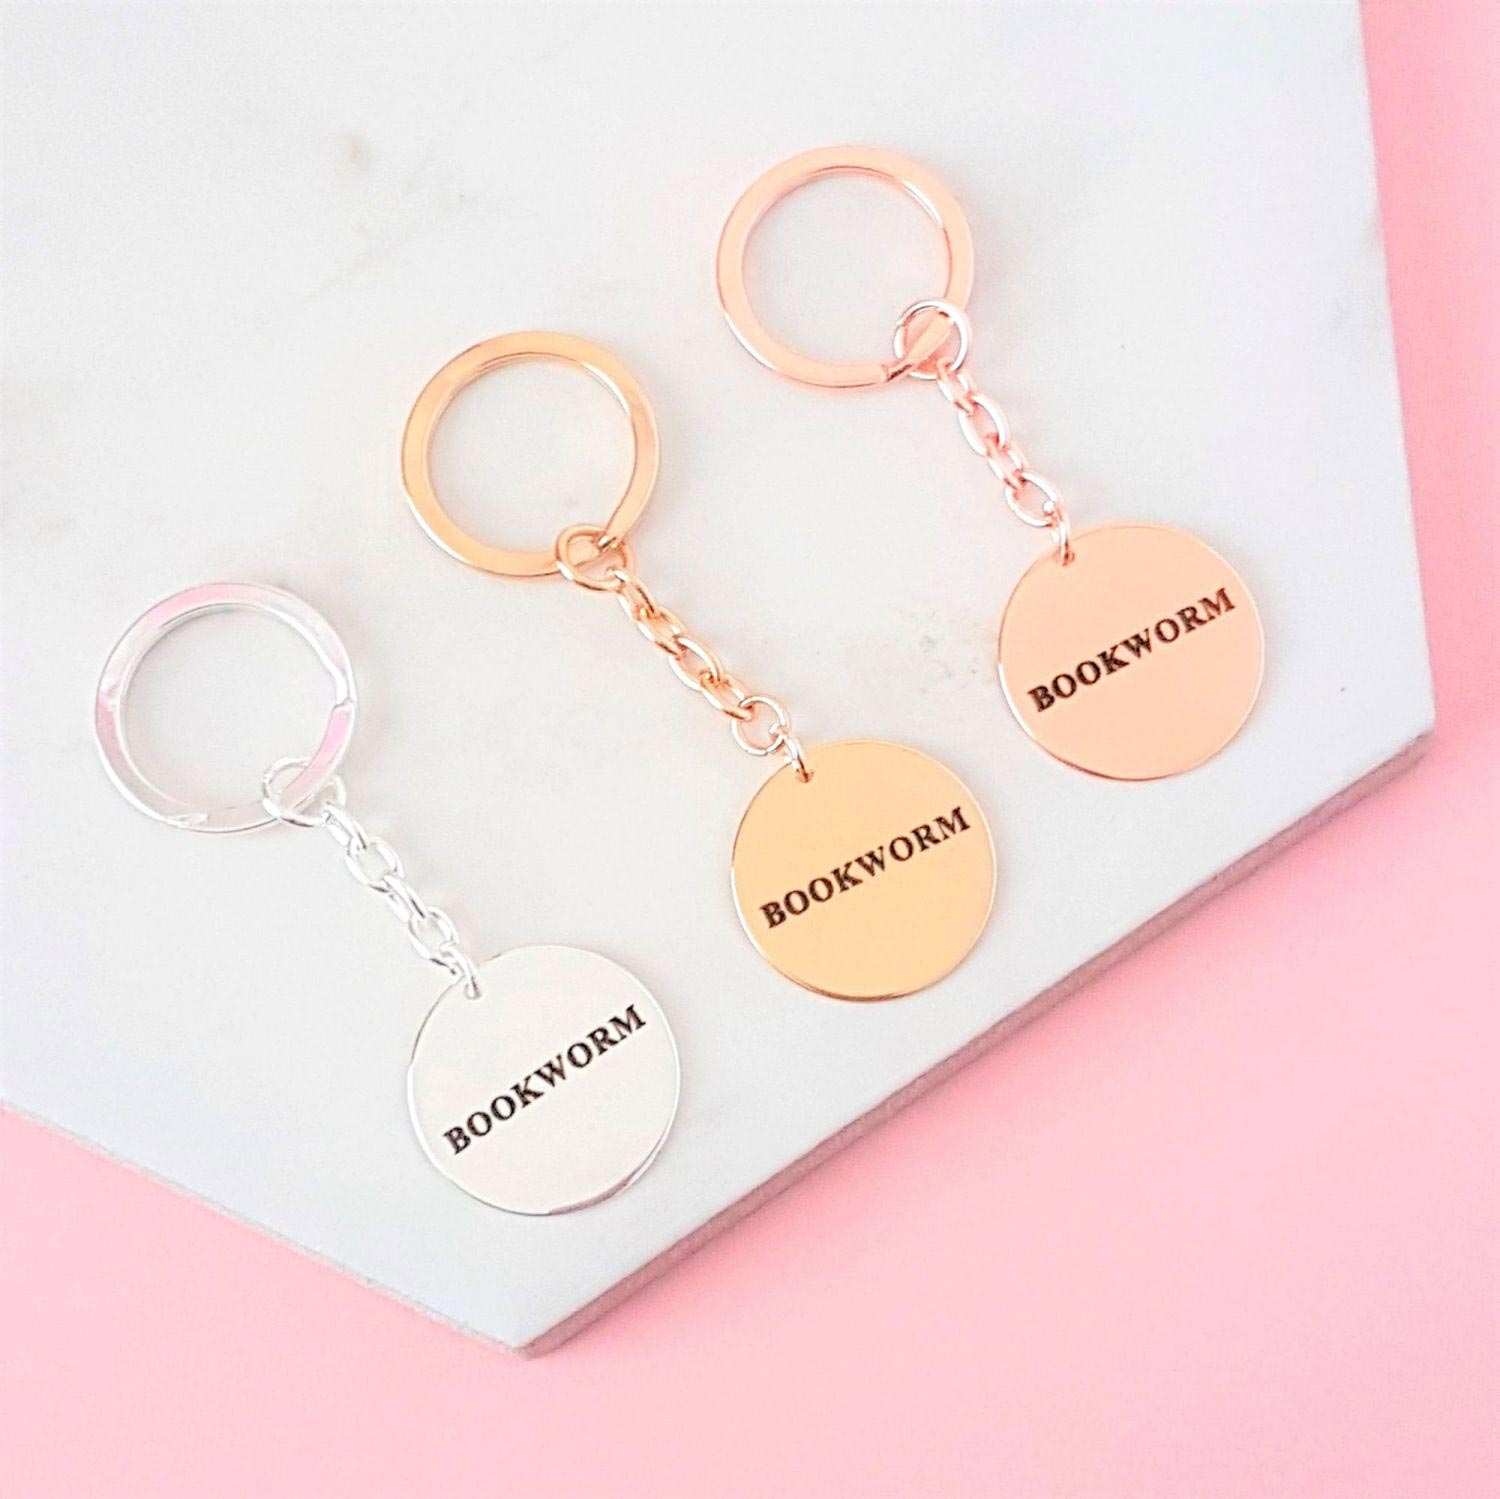 Keyring - Metal - Bookworm - Silver, Gold, Rose Gold